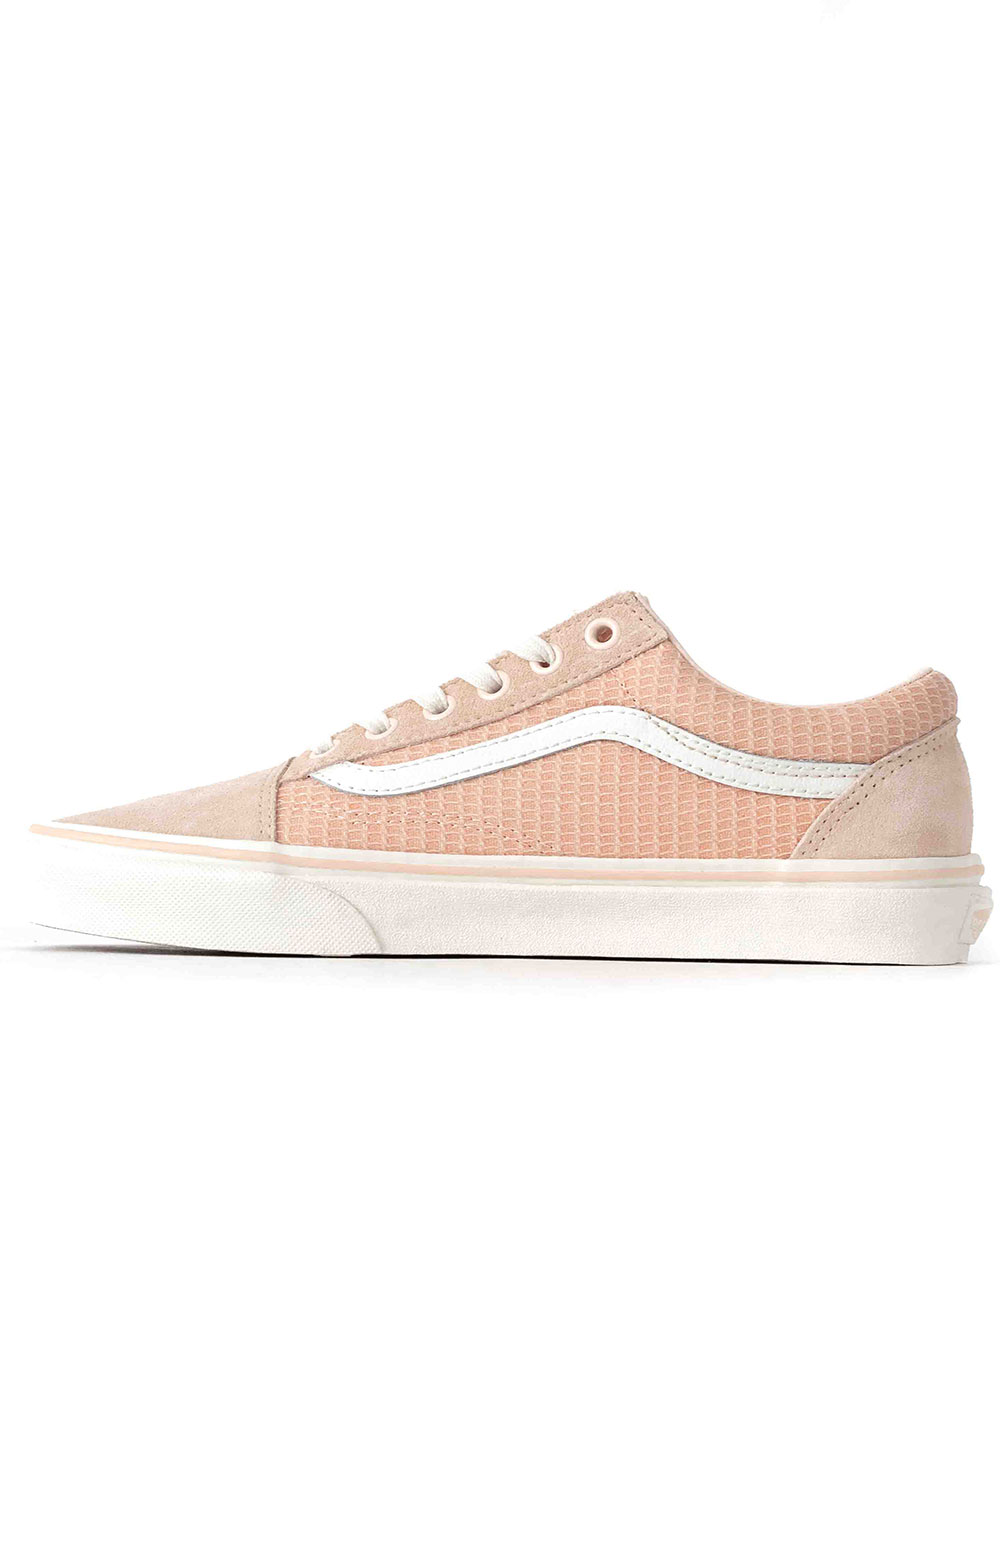 (U3BXF4) Multi Woven Old Skool Shoe - Pink  4